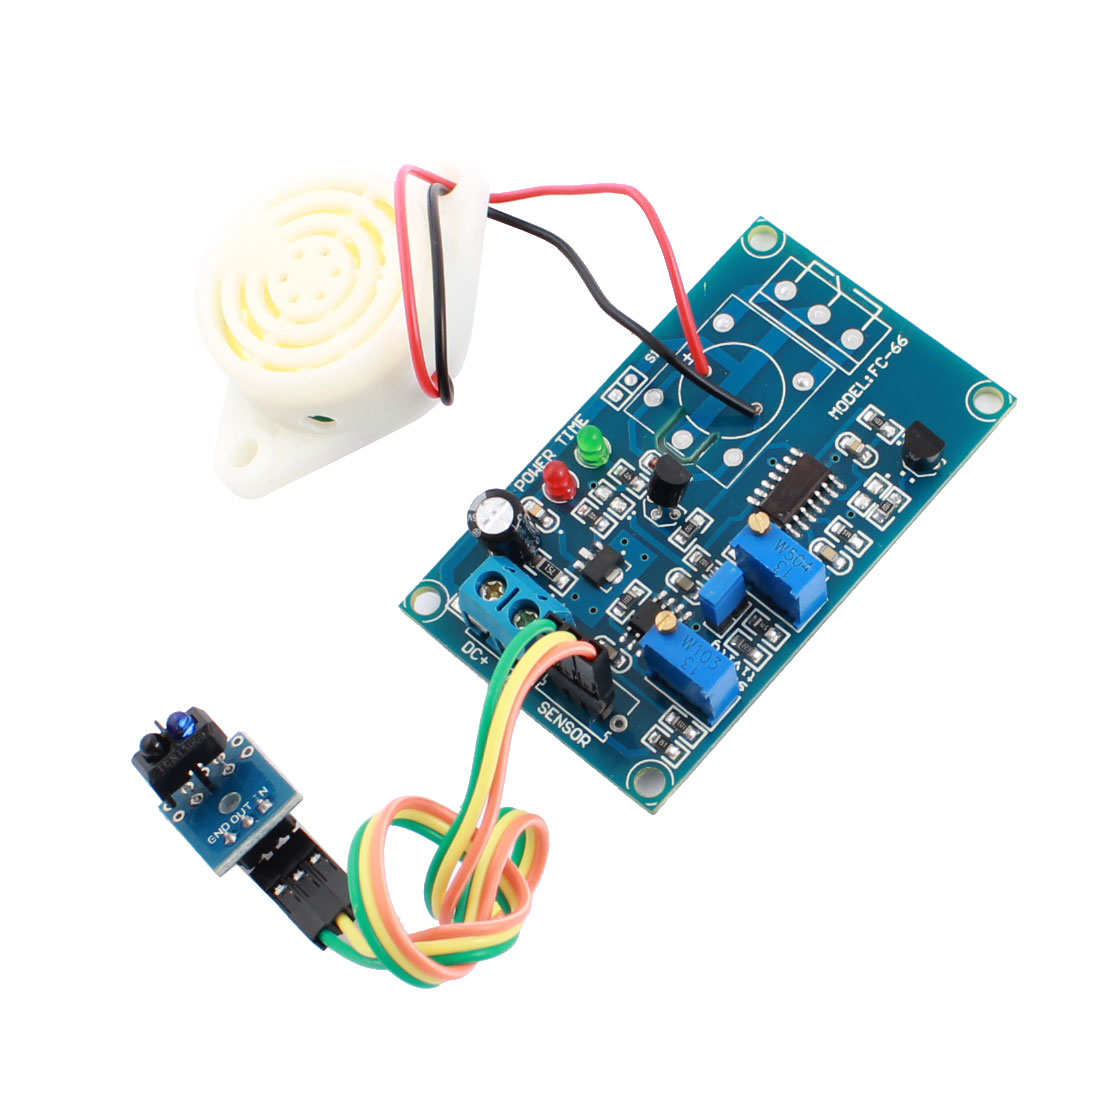 FC-66 DC 24V TCRT5000 Infrared Reflection Sensor Alarm Time Delay PCB Circuit Module w Piezo Buzzer